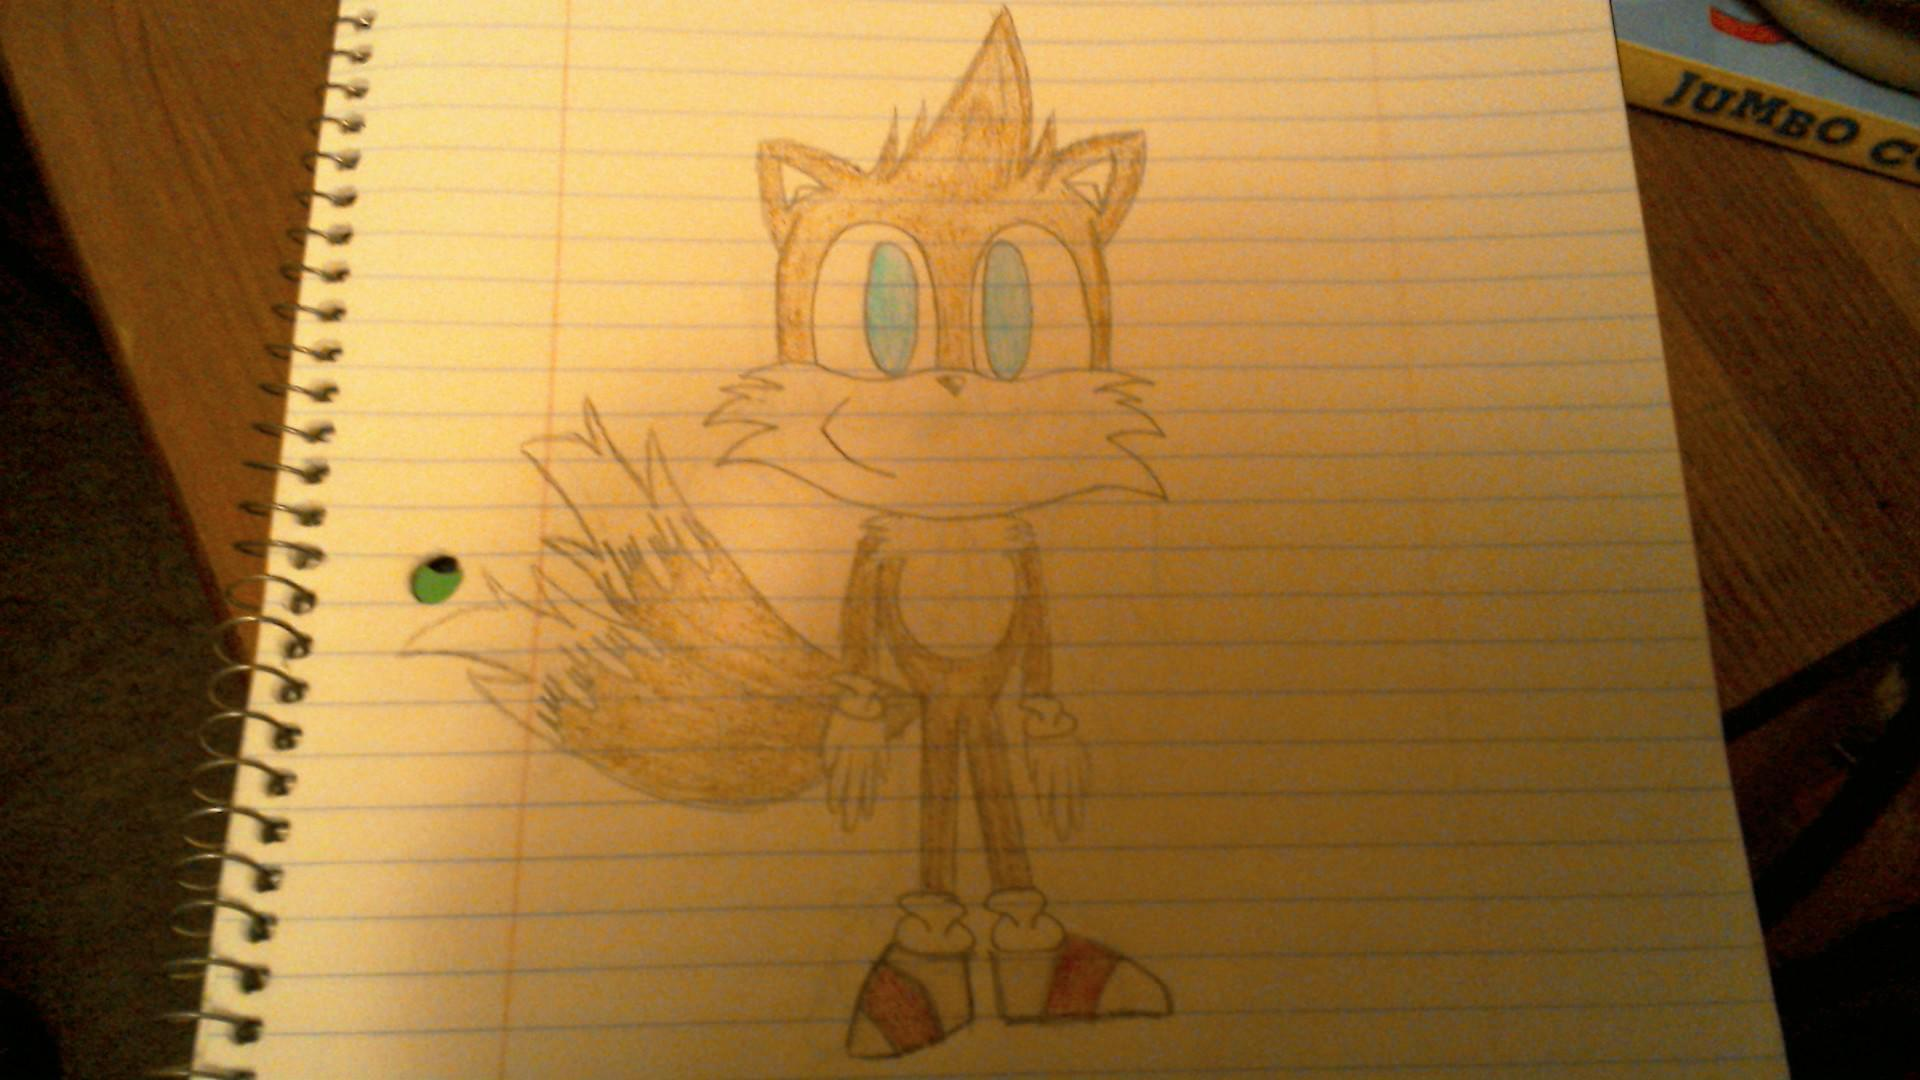 "You try to see over Tails, and when he sees you doing this, he steps to the side. When he does, in his place you see a little 8 year old brown fox with a Mohawk, two frizzed out tails, and shoes like Sonic's except with a red stripe. ""Aww he's adorable! Who is he?"" you ask."